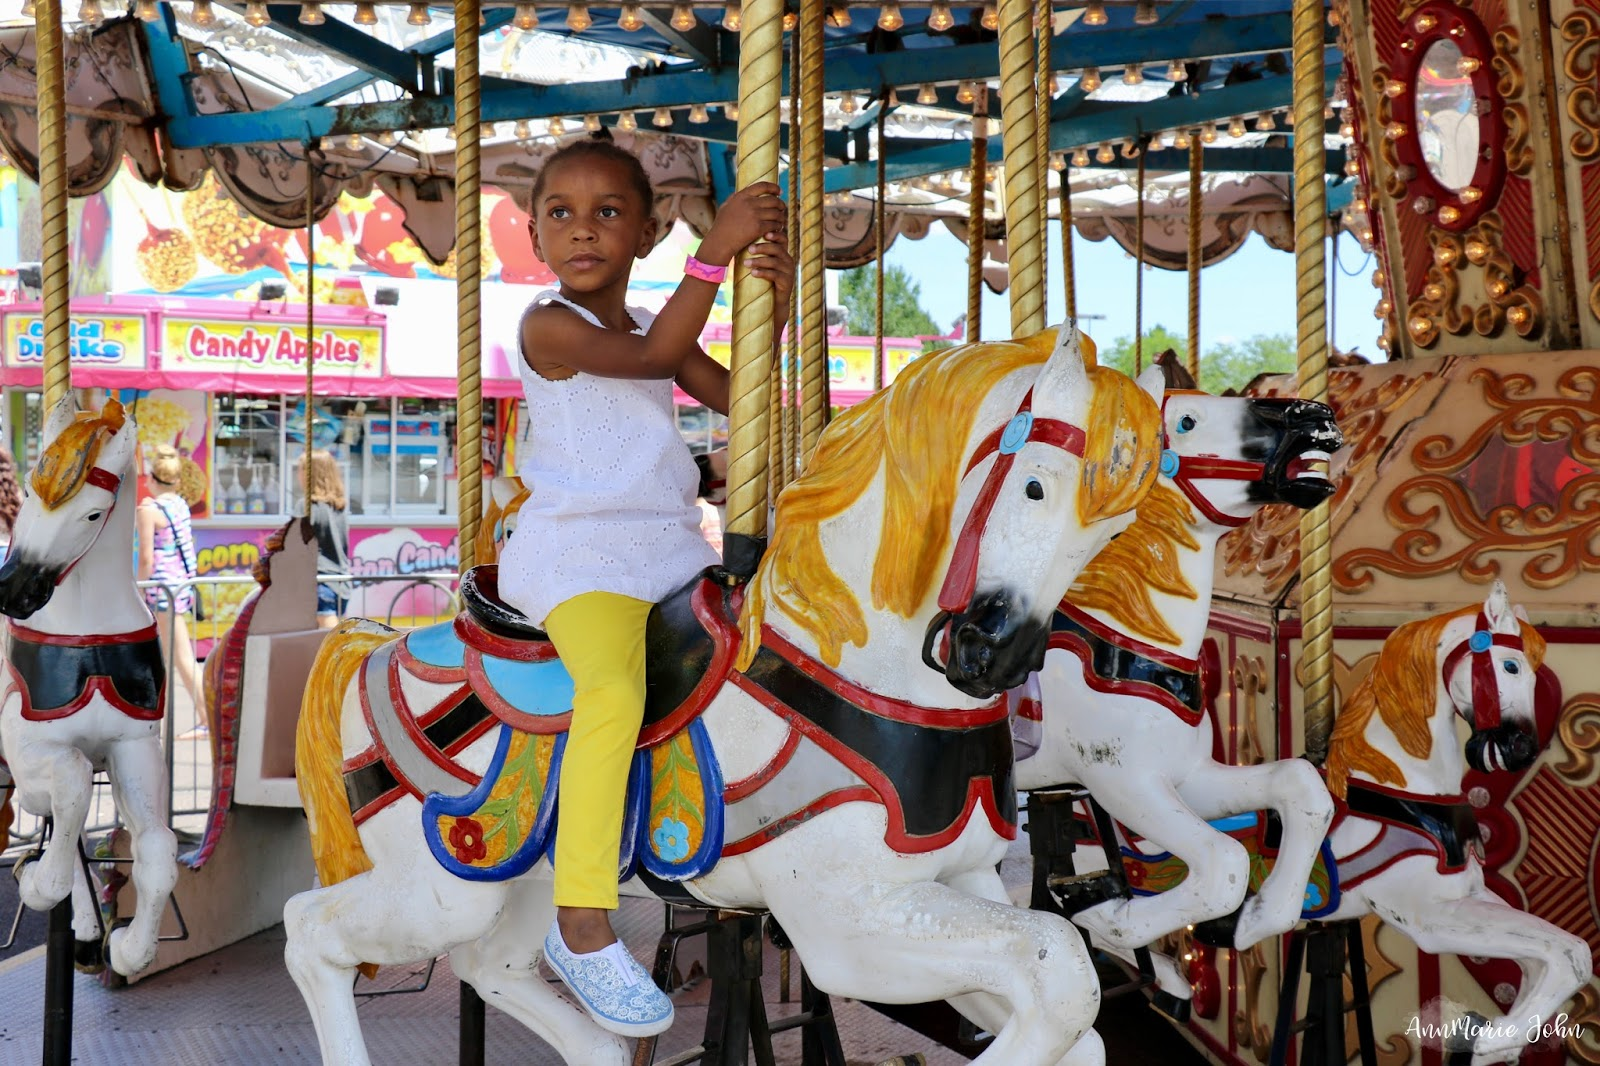 5 Reasons to Take Kids to the State Fair